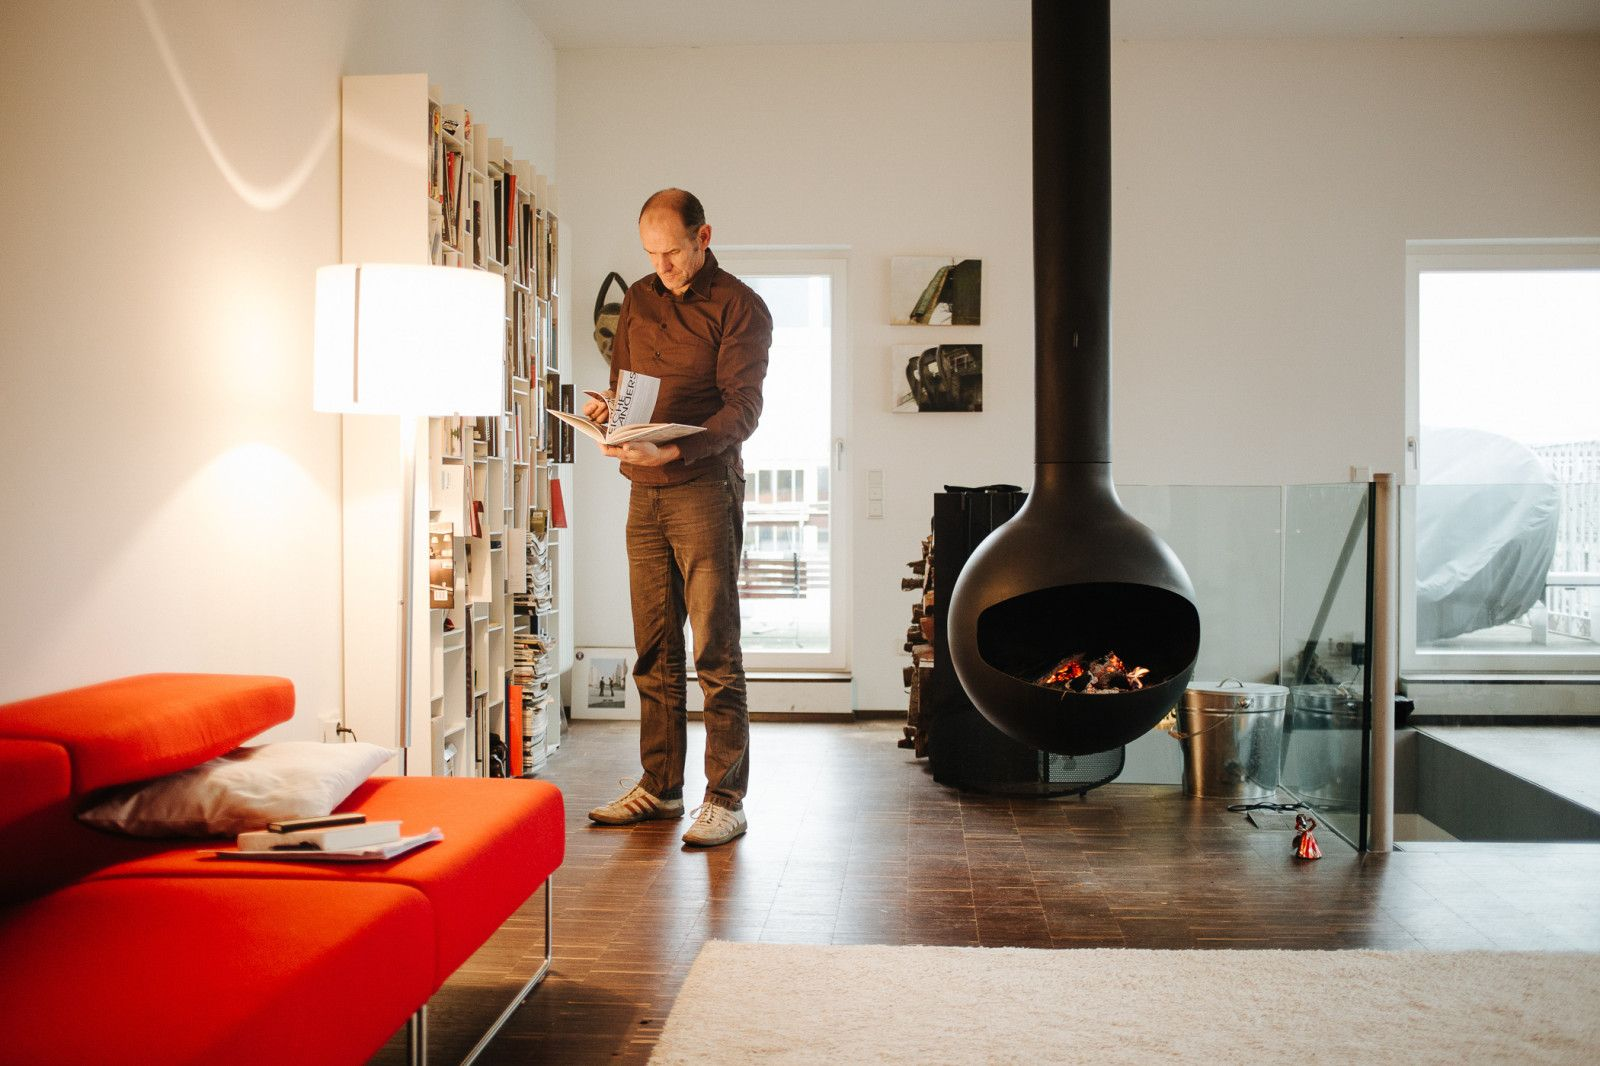 Manfred Wolf has experienced great success with his practical approach to design. Working with meticulous devotion on his lamps, the product designer places his focus on sophisticated details. His company, serien.lighting, is located outside the city of Frankfurt in an old brick factory building.